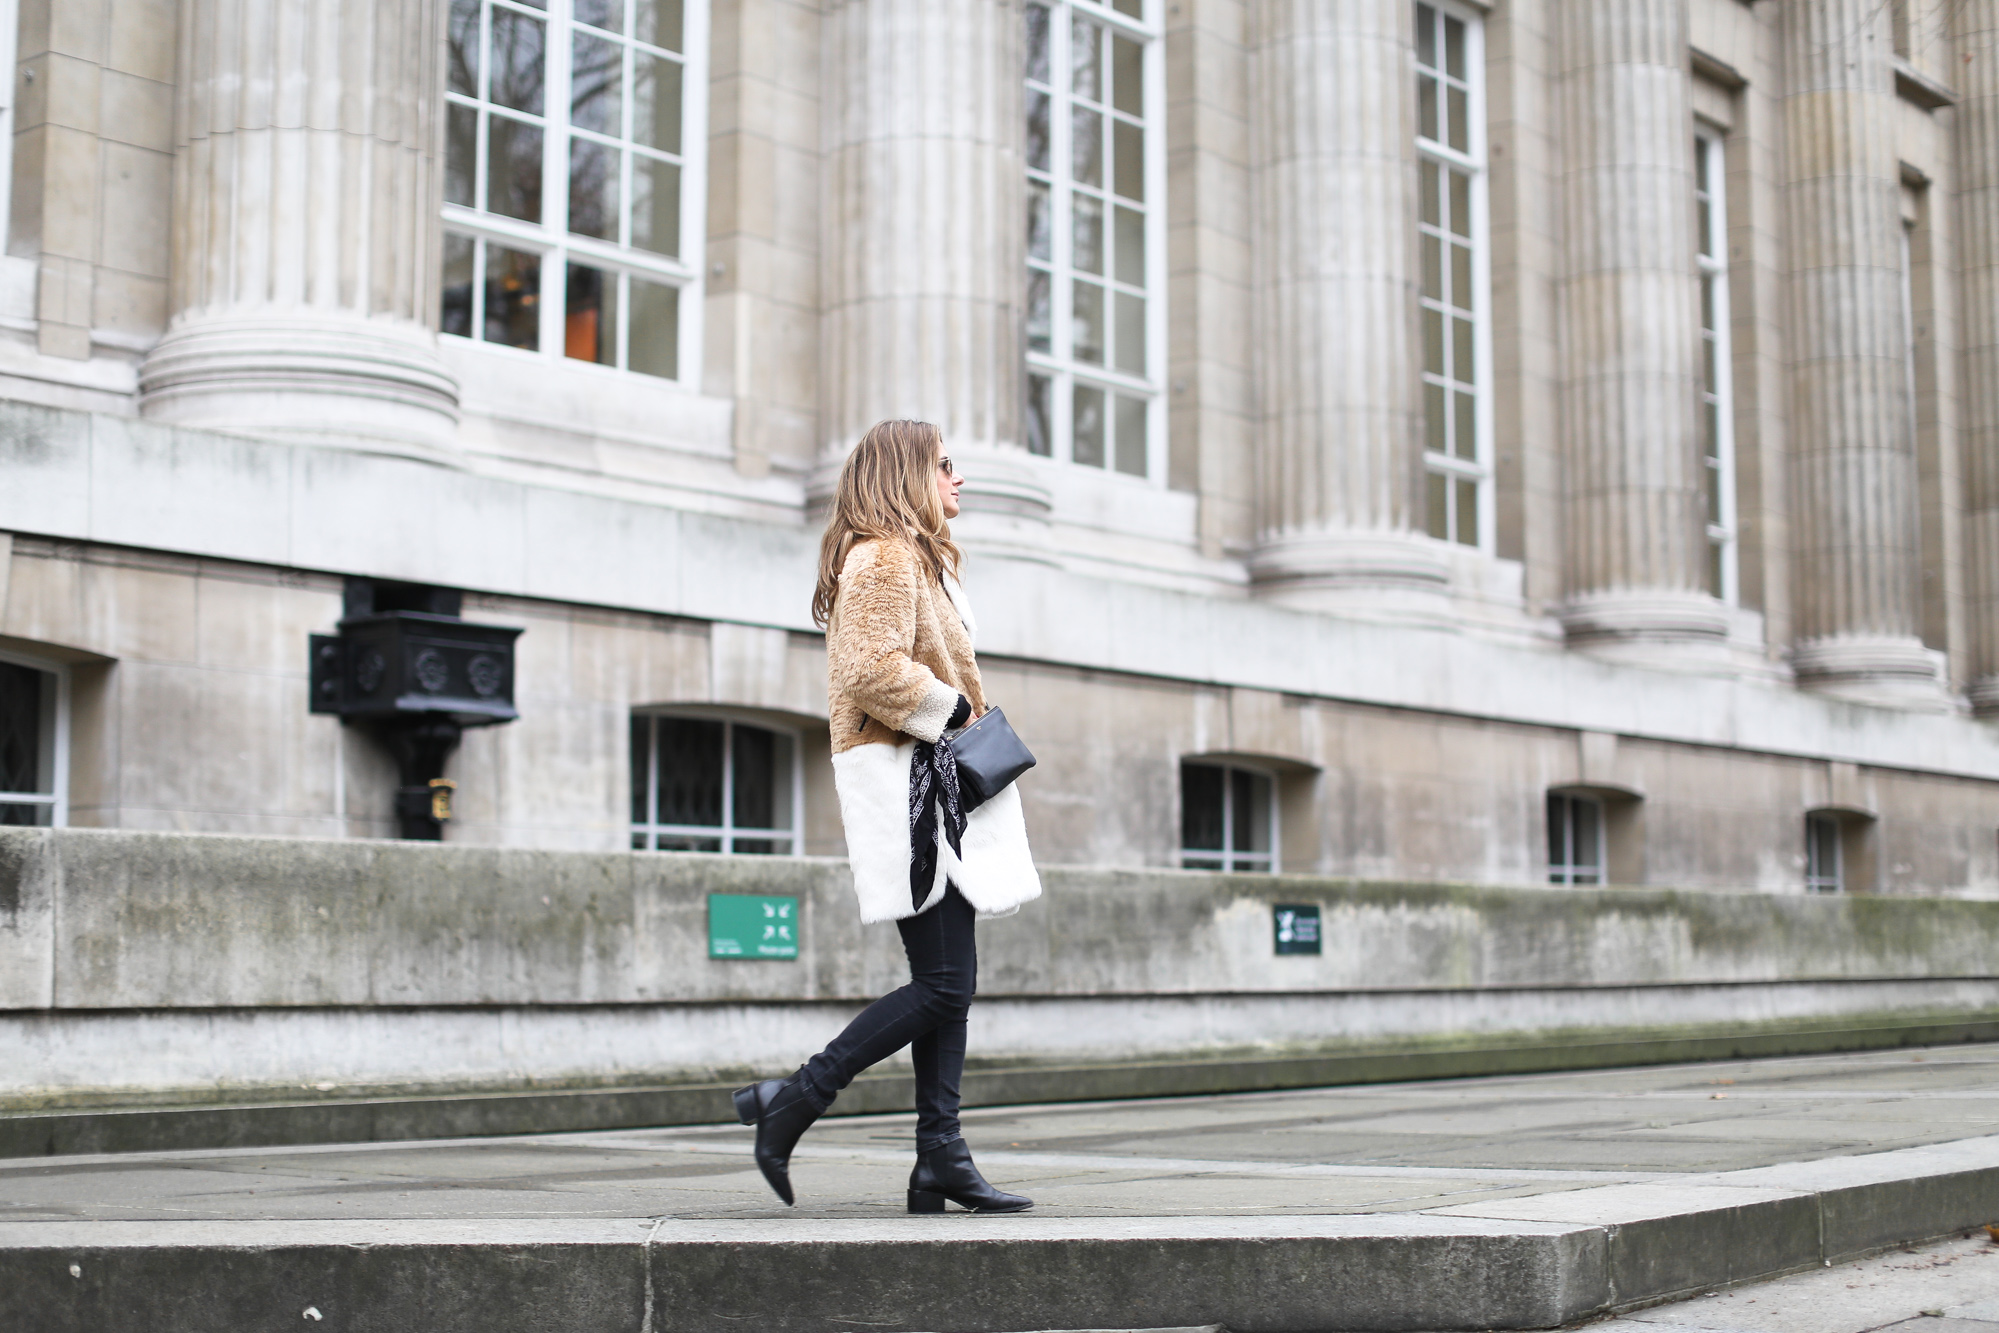 clochet_streestyle_london_asos_faux_fur_patchowork_coat_topshop_jamie_jeans-5